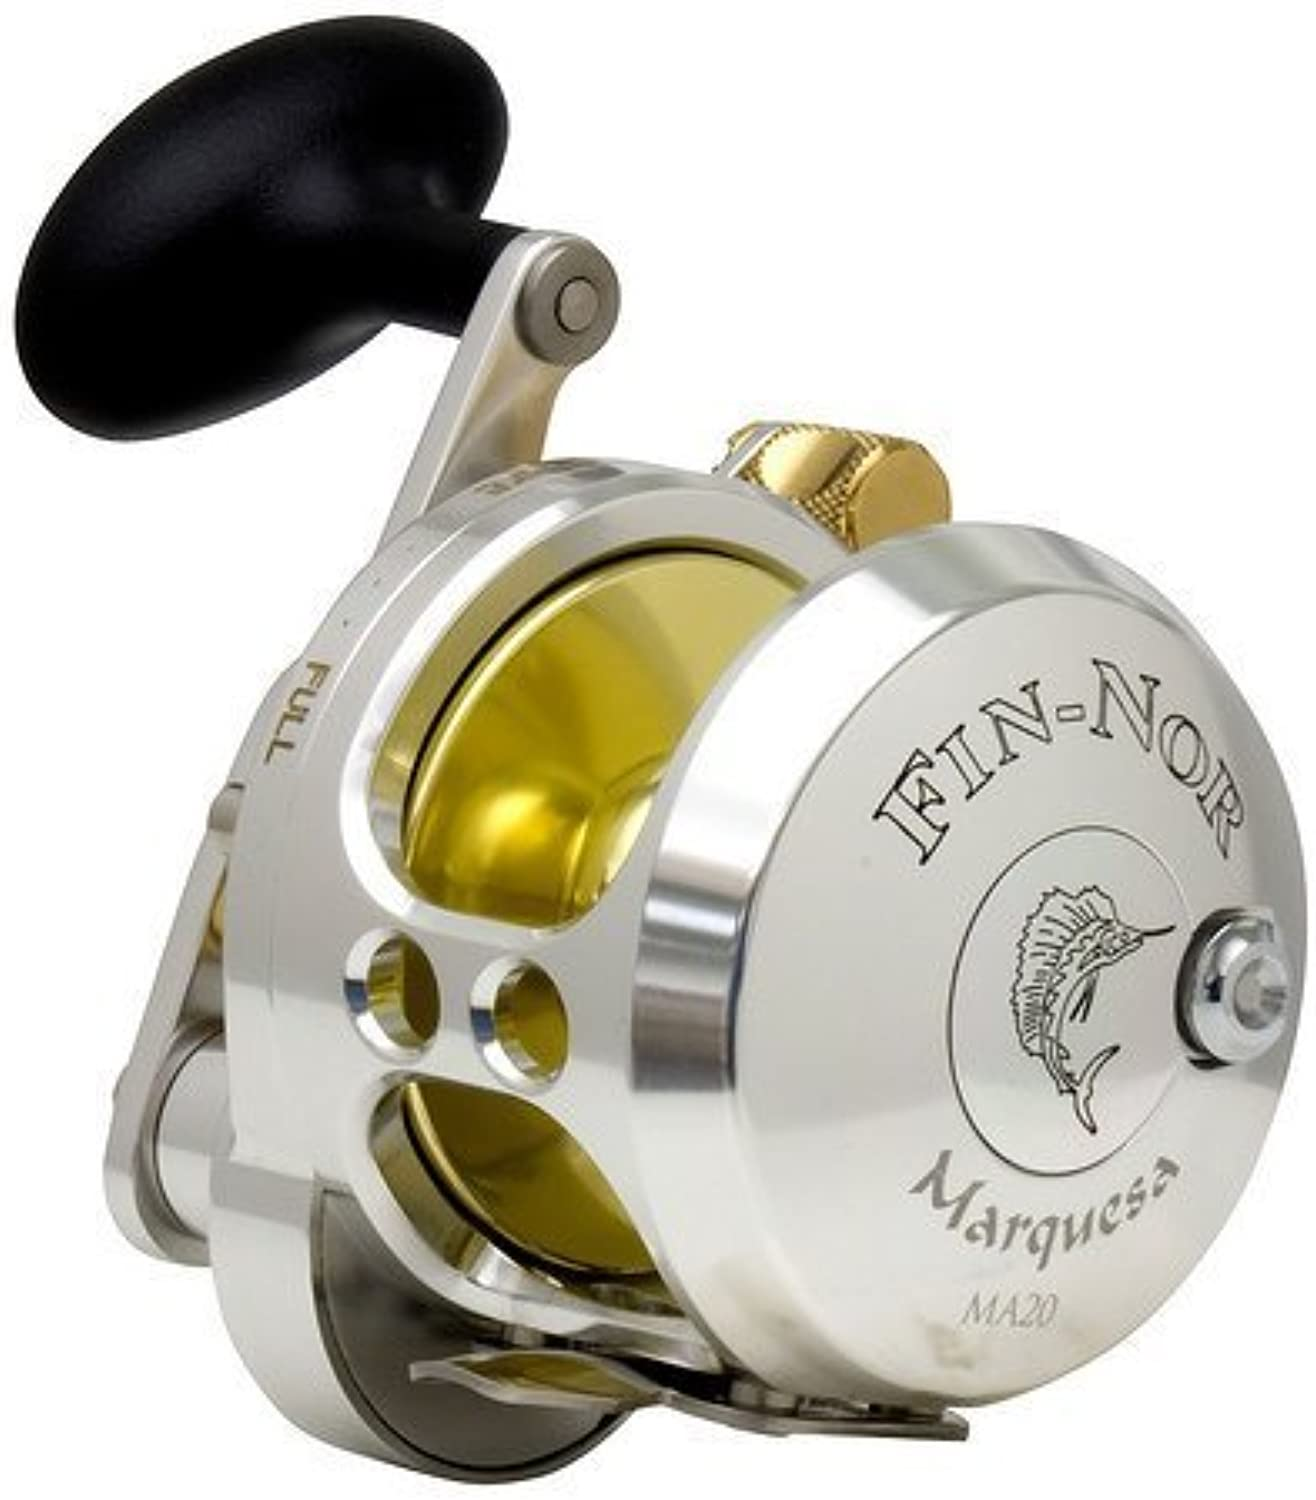 Fin-Nor Marquesa Lever-Drag Reel (300 yds) by